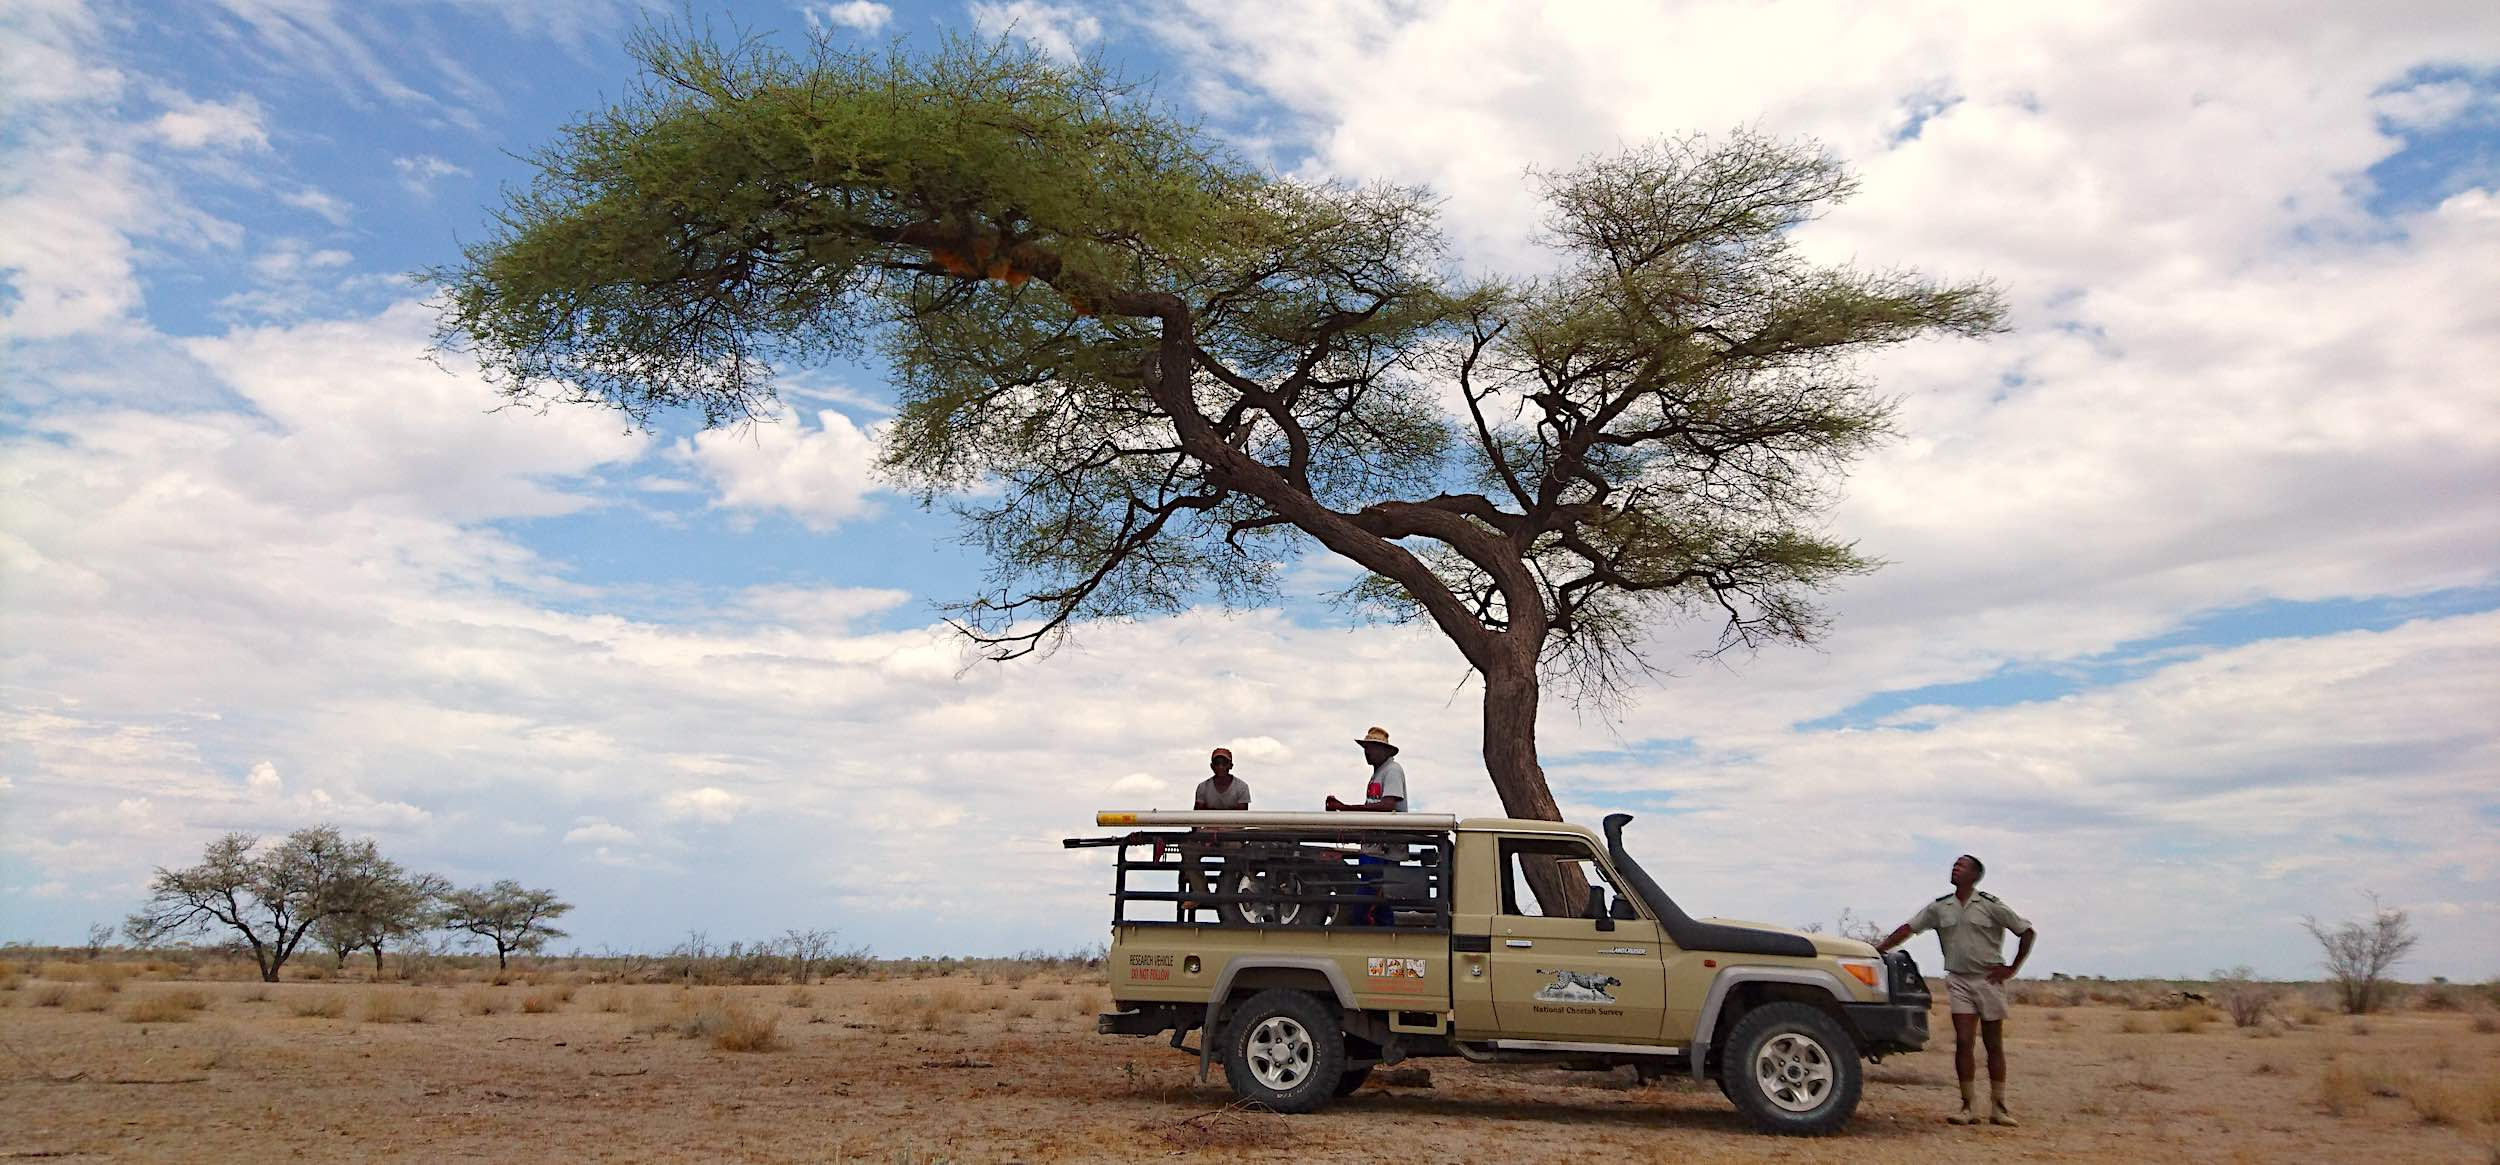 Three men and a Toyota Landcruiser parked under a large tree in an otherwise desertlike environment.